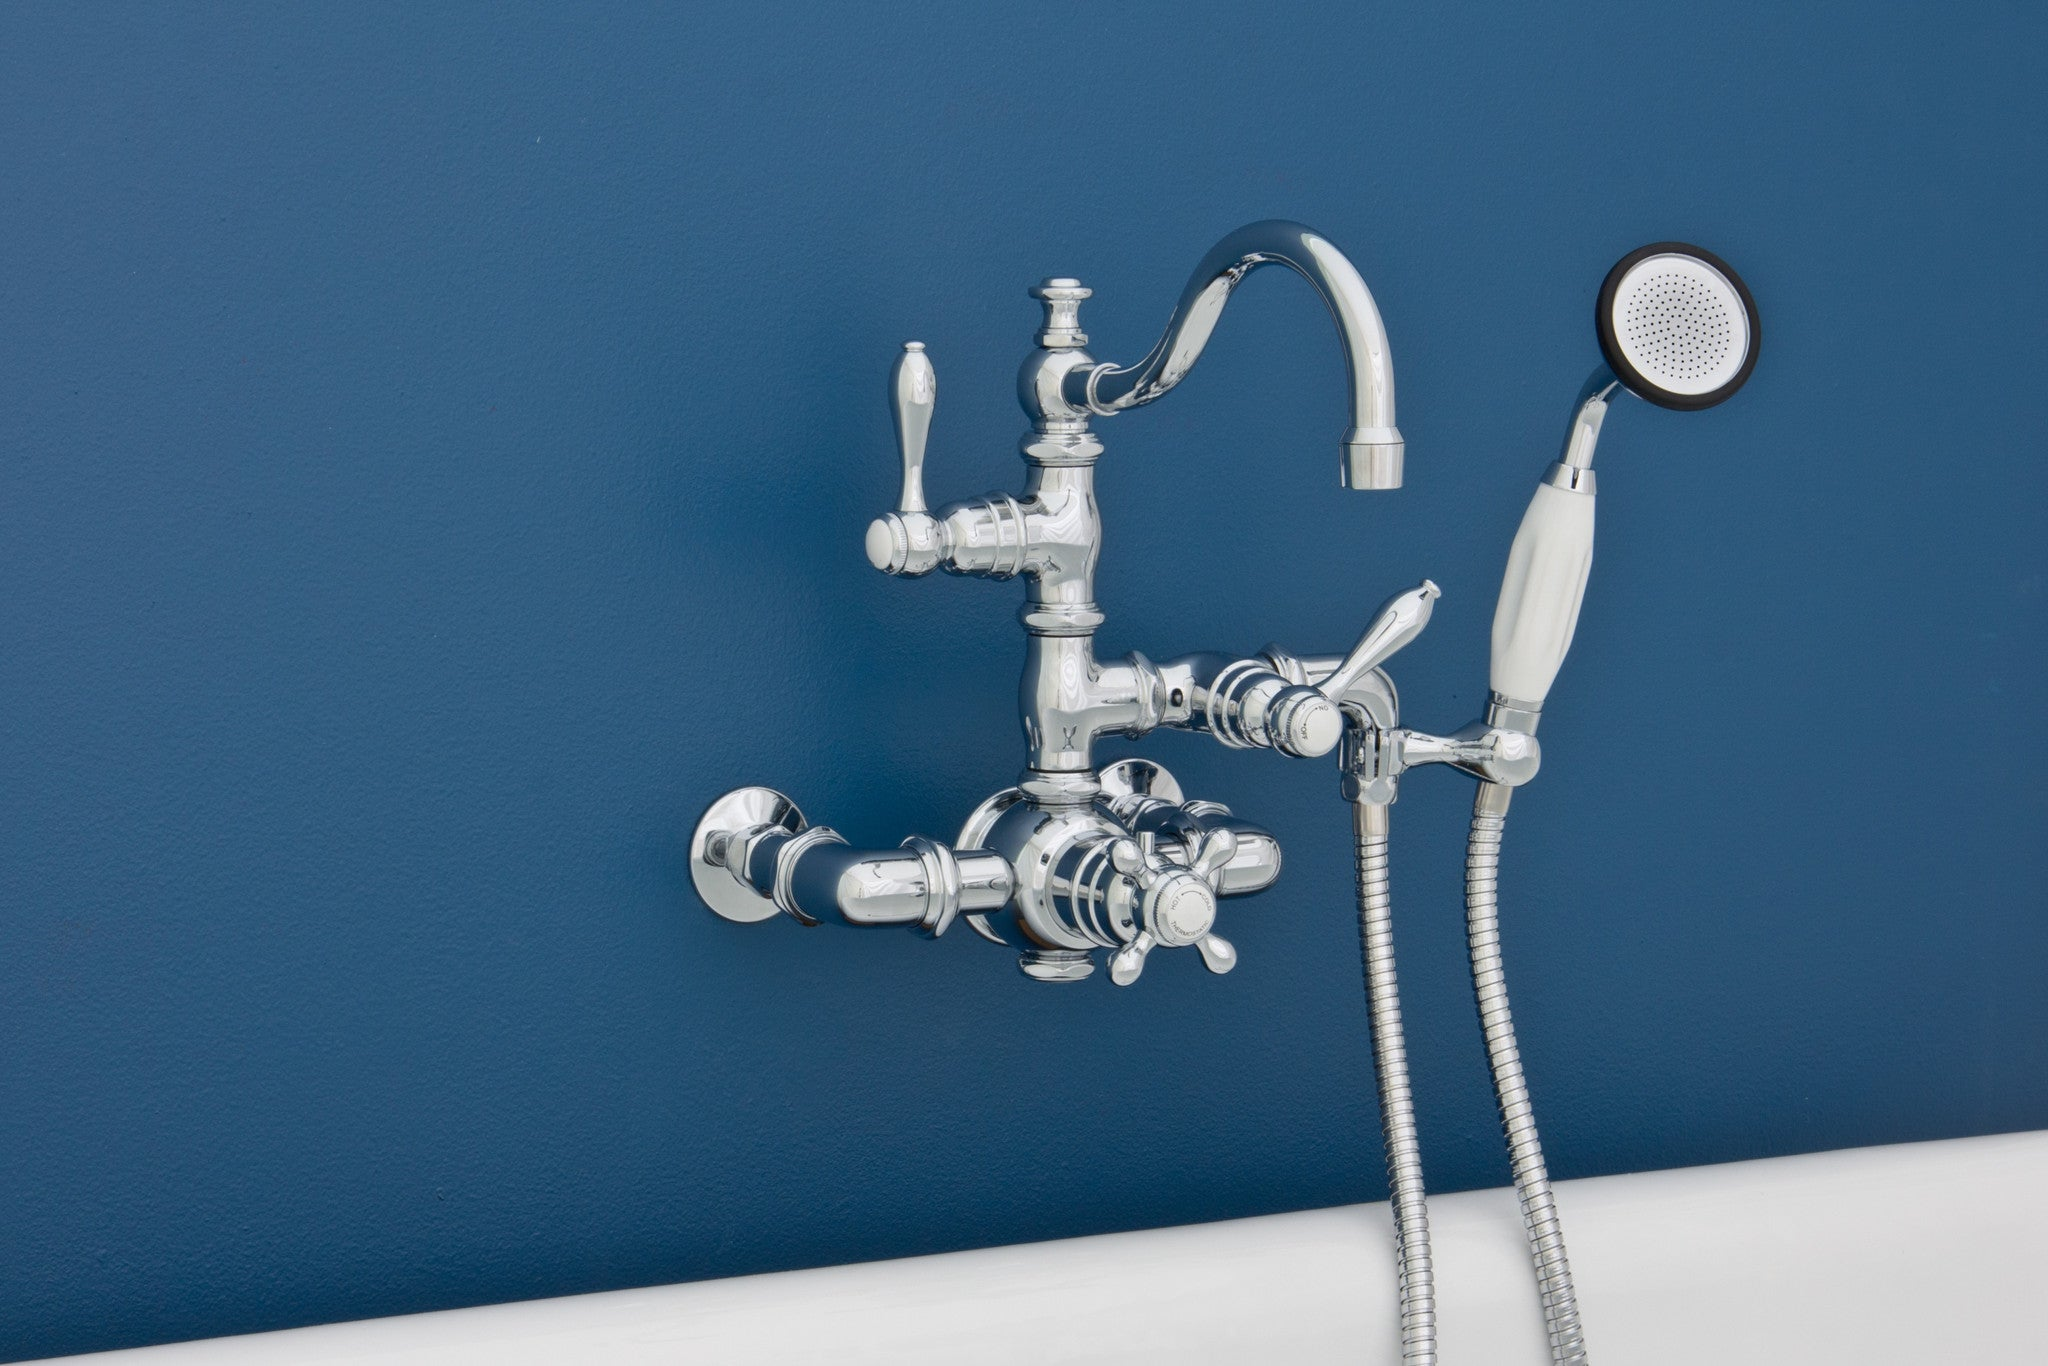 Thermostatic Wall Mount Tub Faucets Rustic Sinks